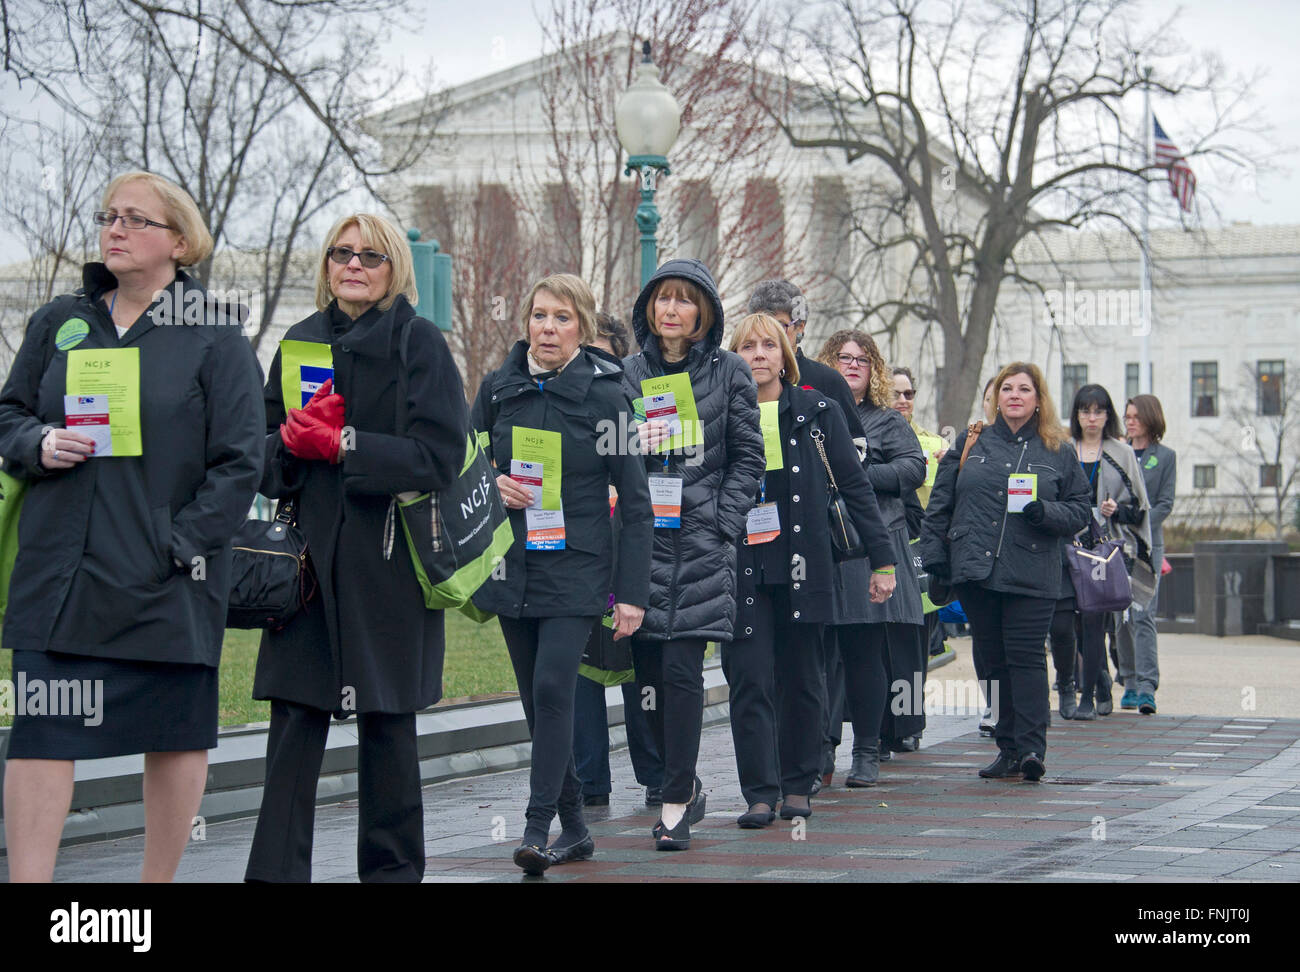 As part of an action organized by the National Council of Jewish Women (NCJW), nearly 400 women walked in silent - Stock Image